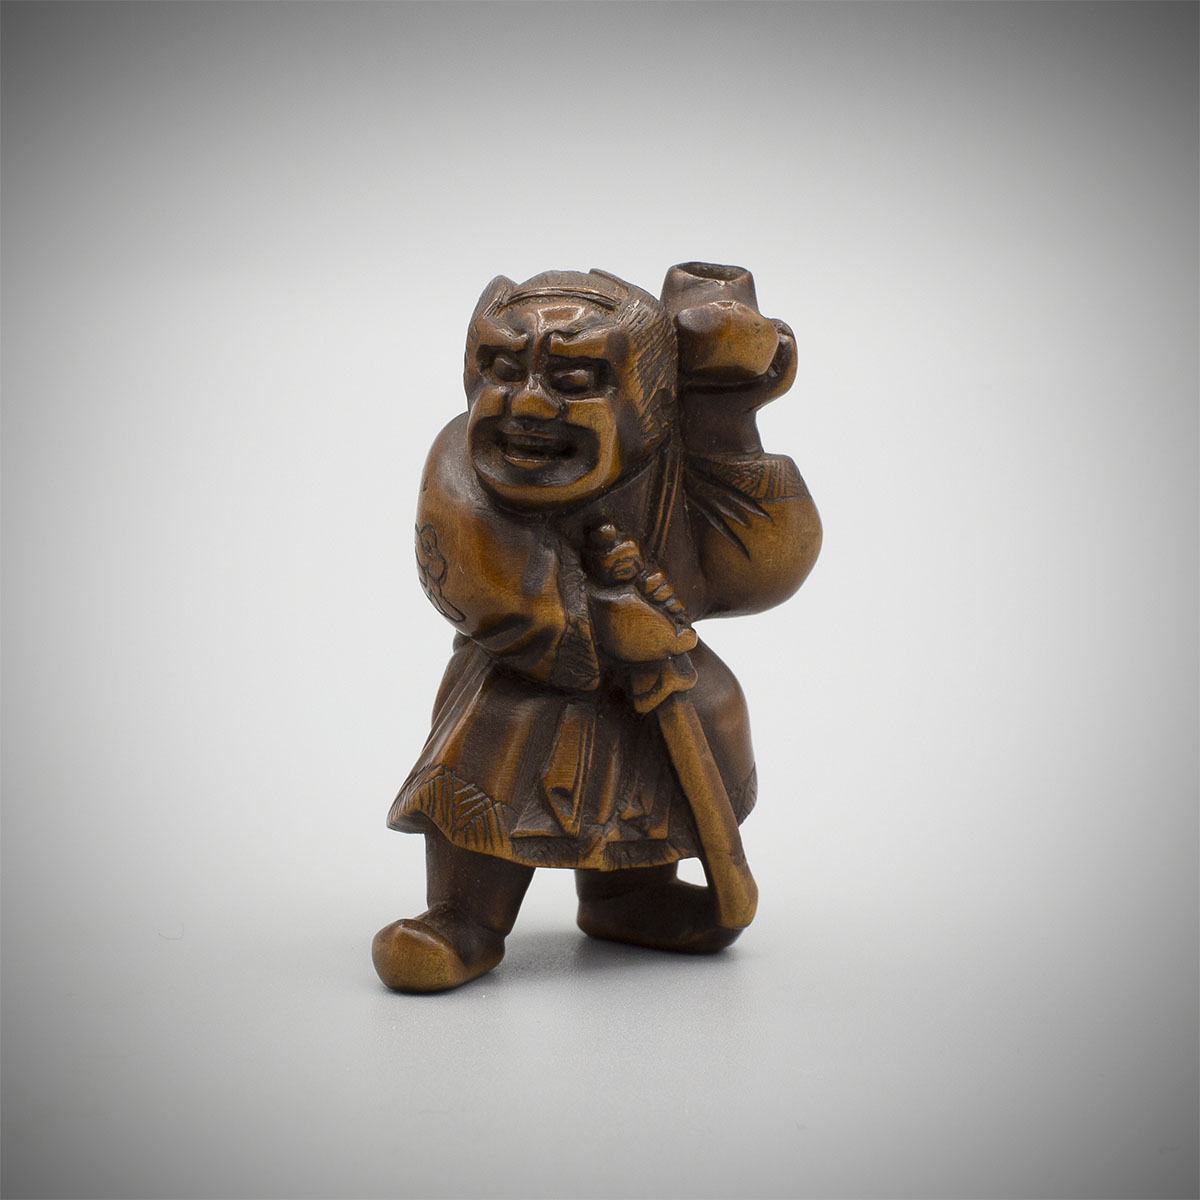 Wood Netsuke of Kamatari, MR3564_v.1